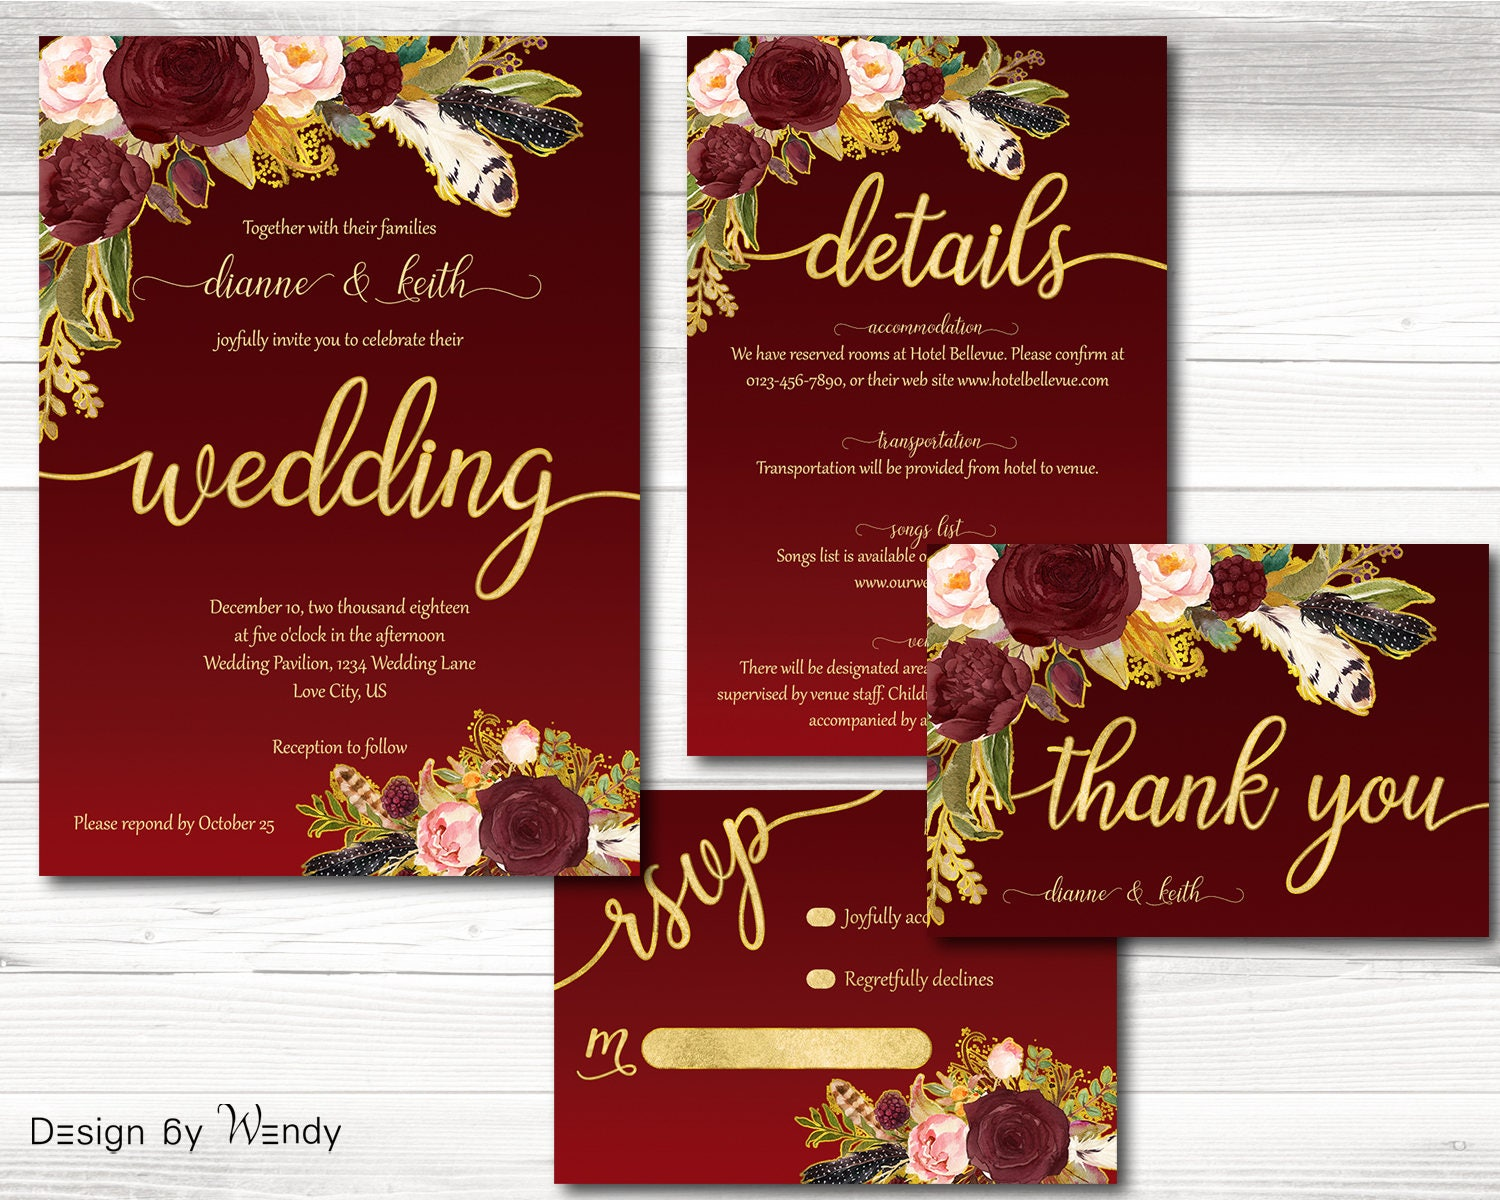 Burgundy and gold wedding invitation boho wedding invite set | Etsy